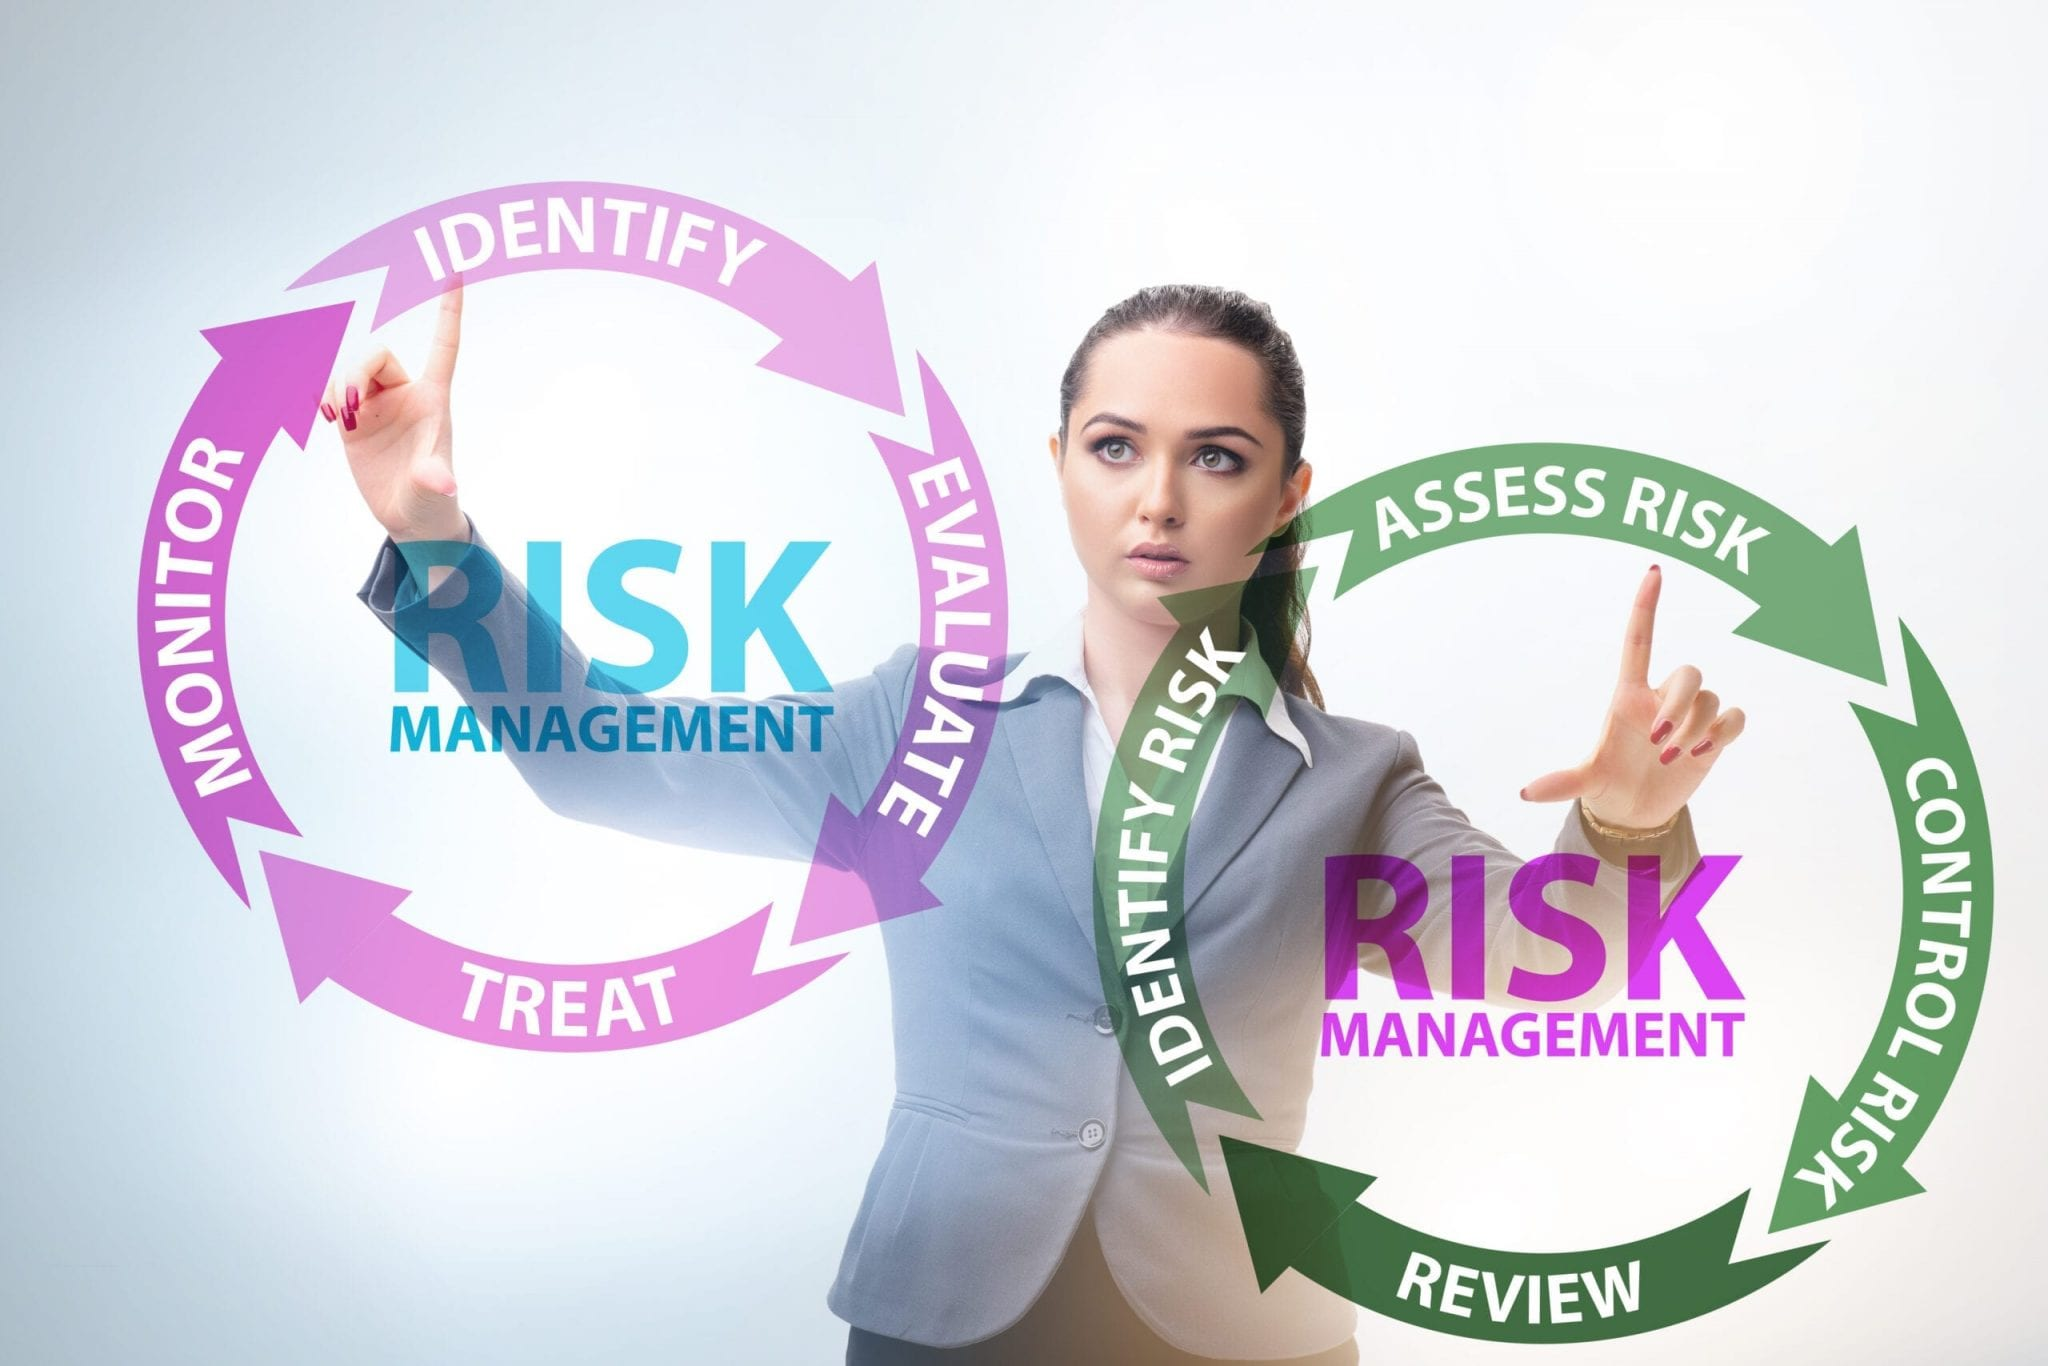 Identify and mitigate security risks